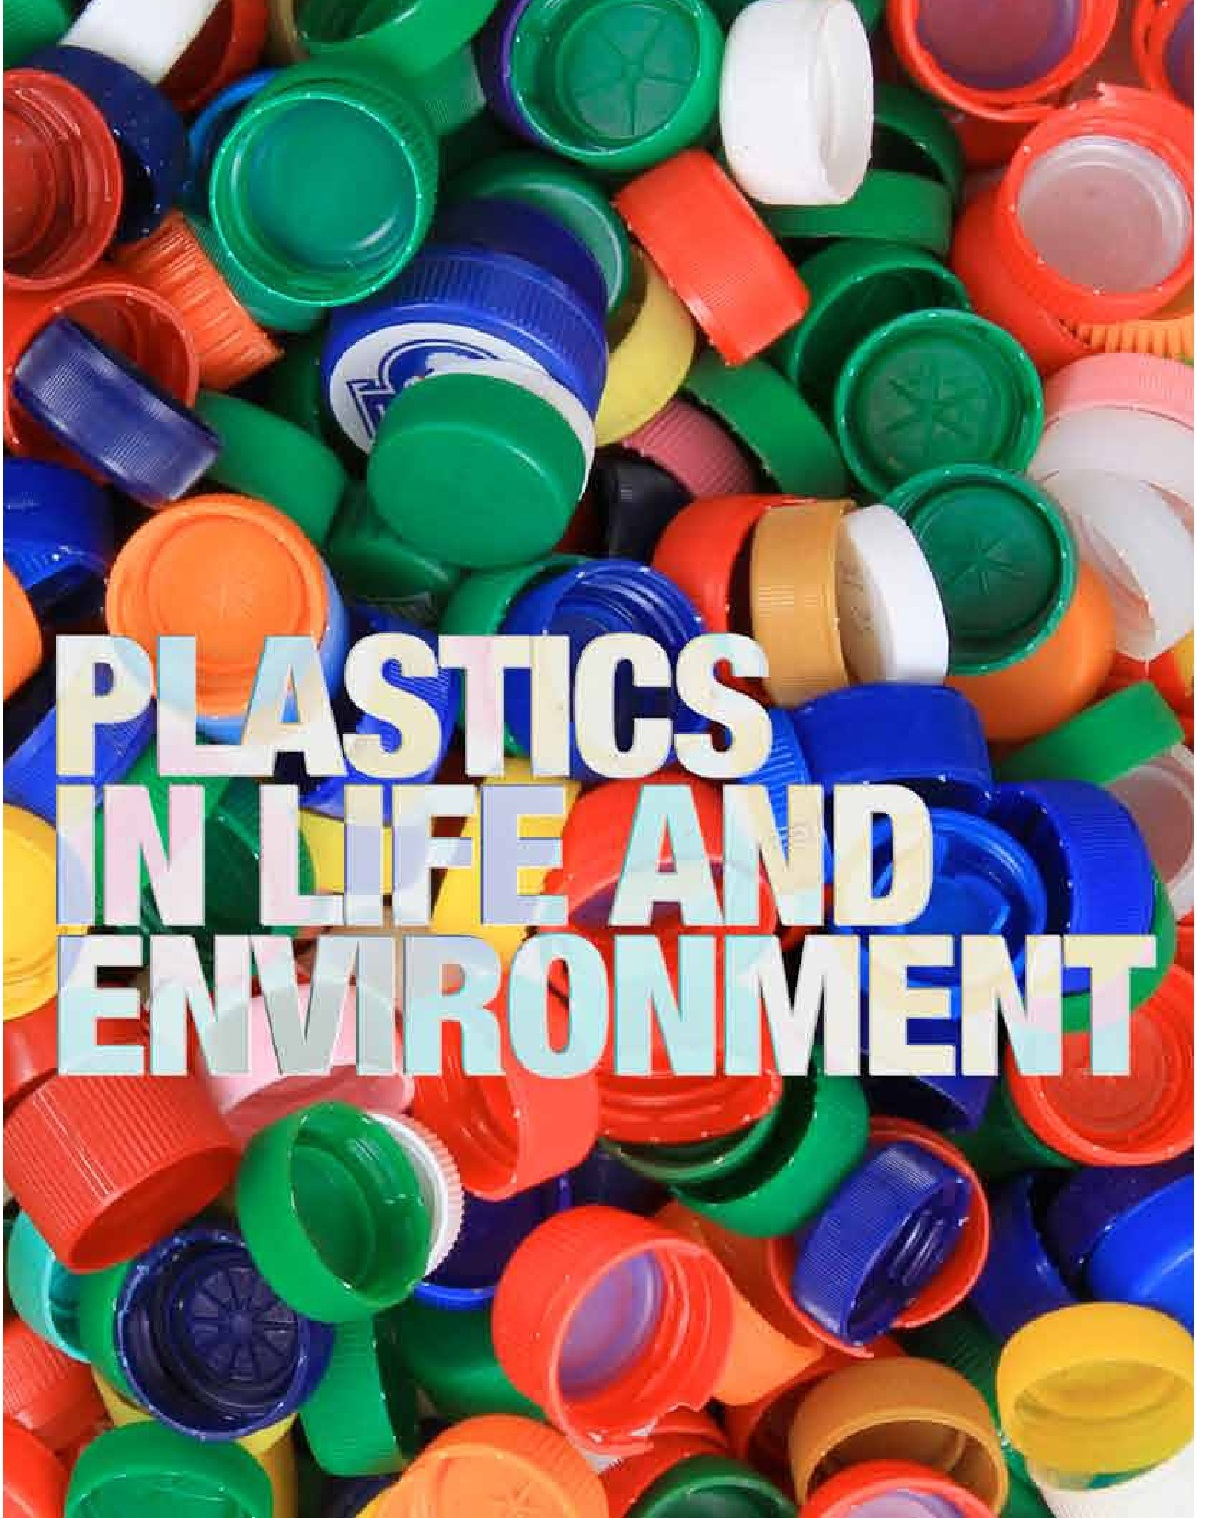 Image of cover of Plastics in life and Environment